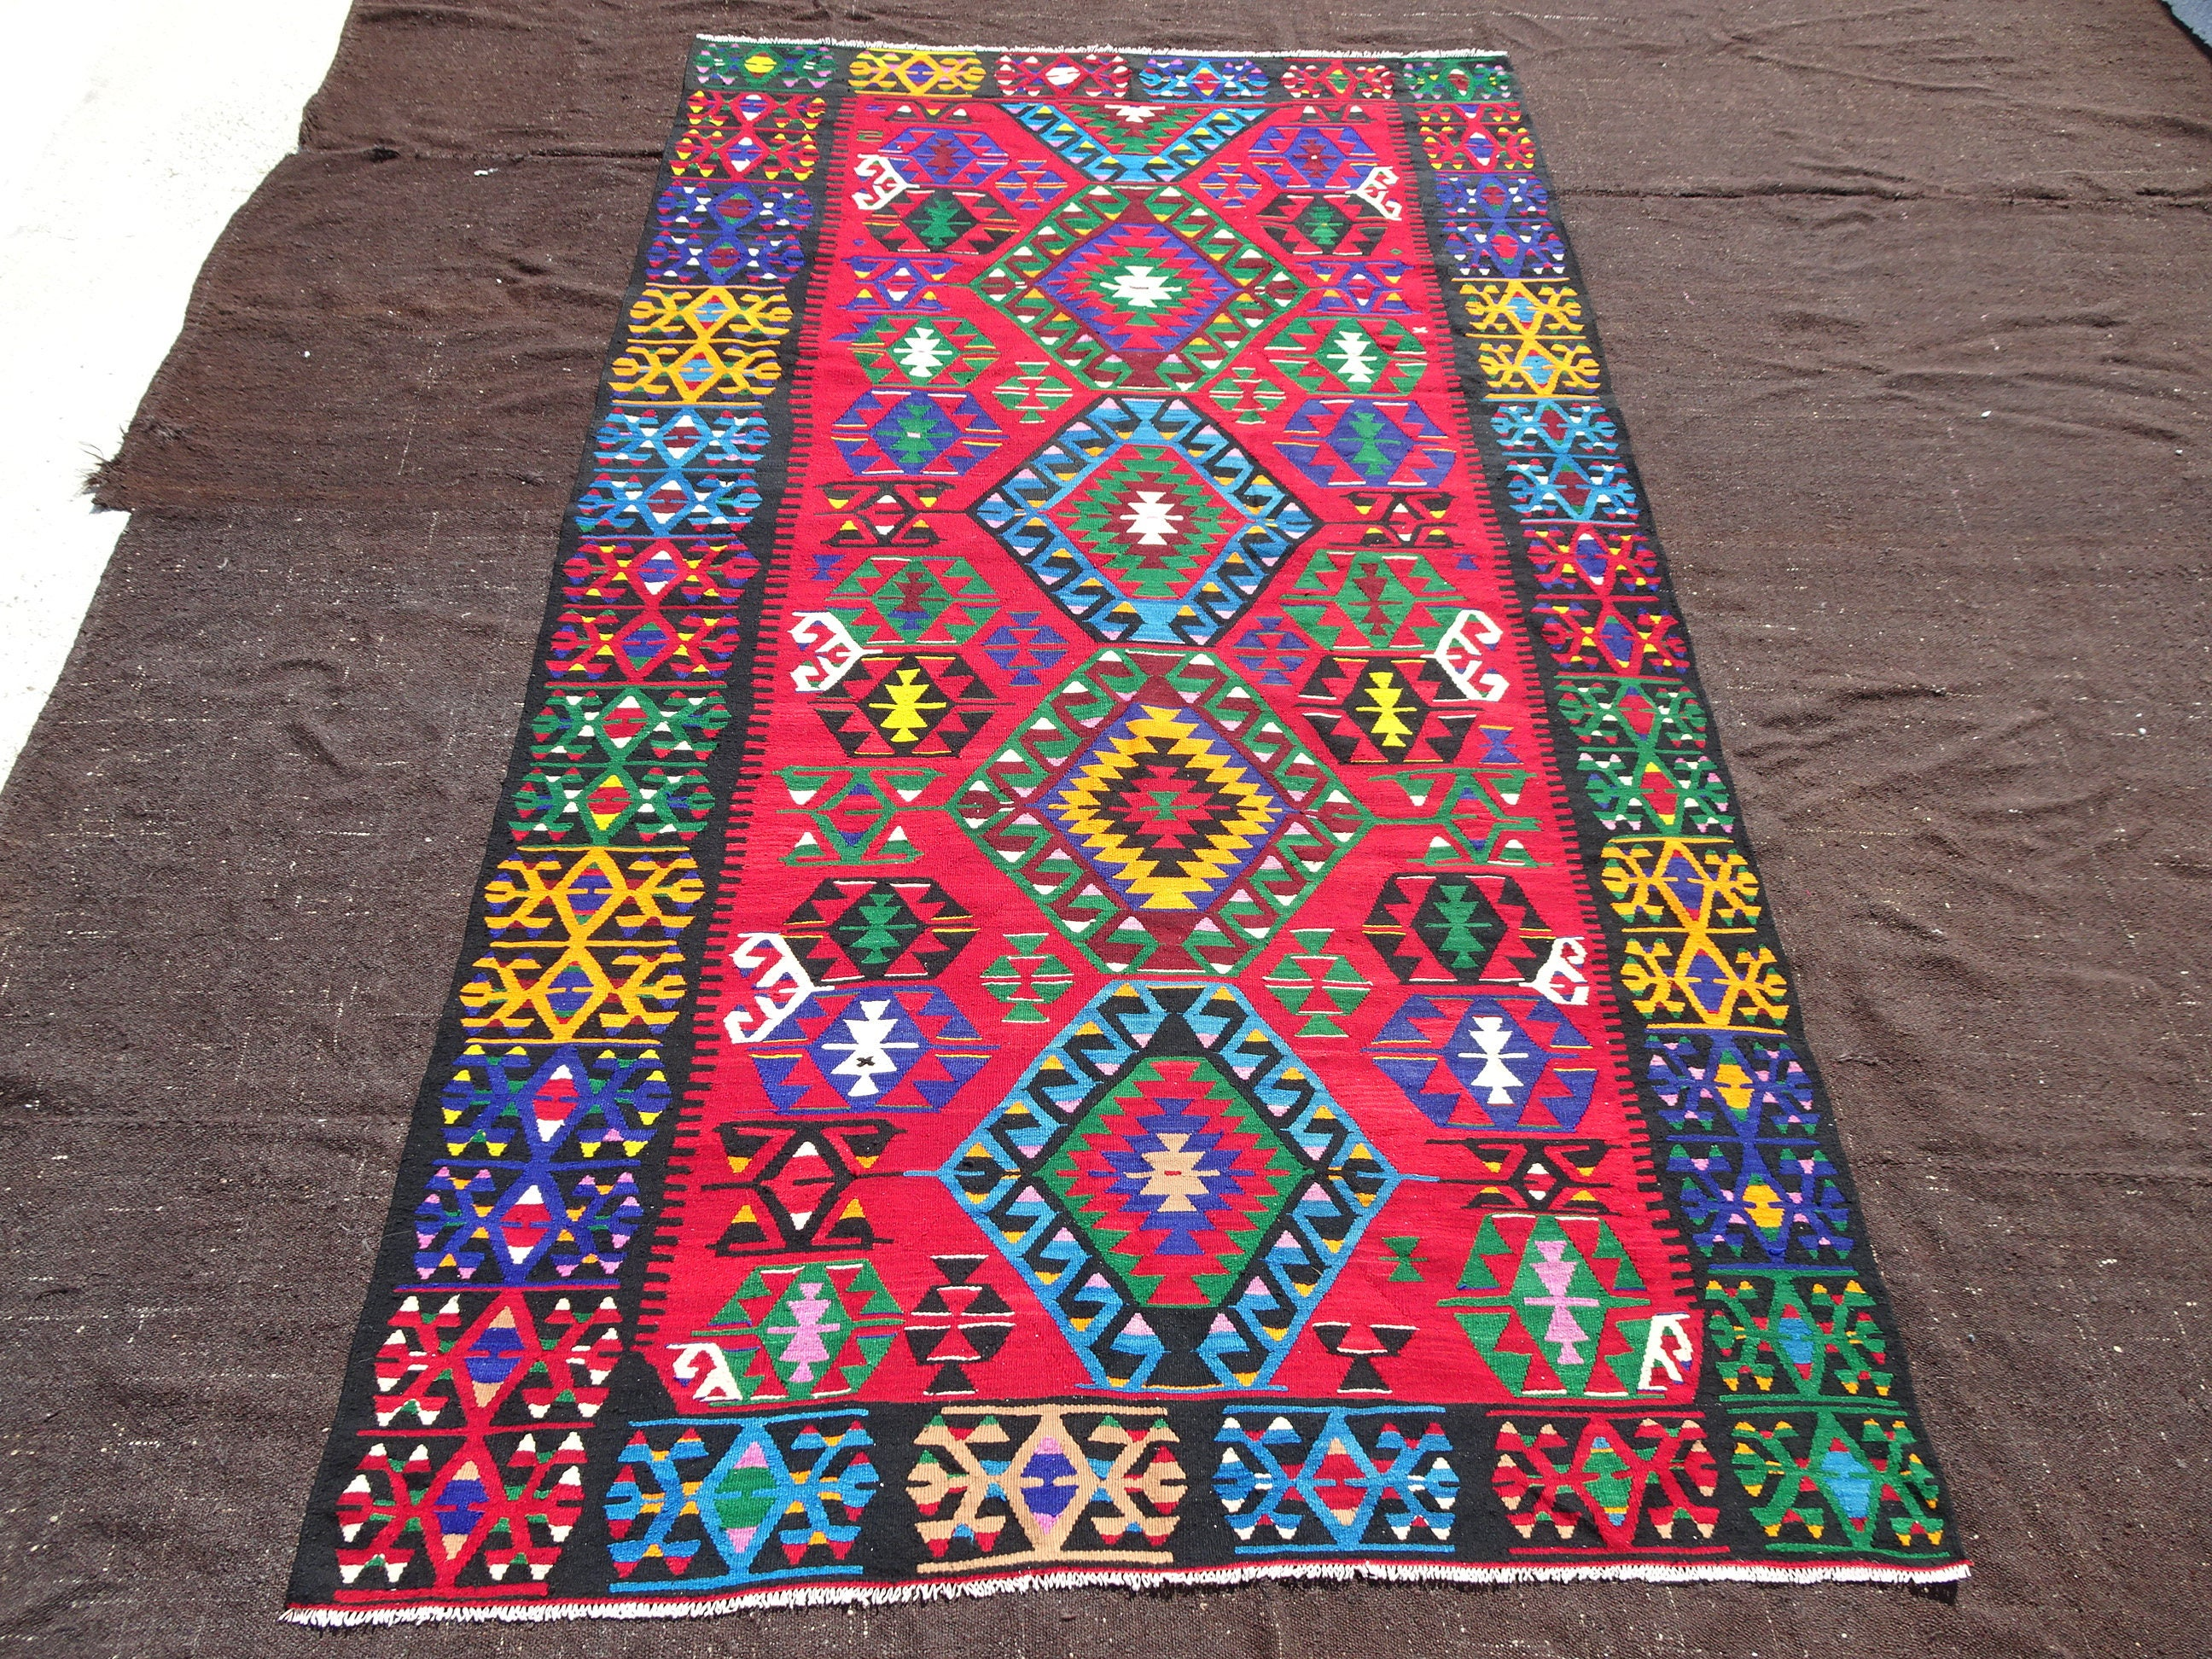 turkish century two then and adana hand is kilim located this together as eastern mid in vintage pin pieces woven rug stitched rugs